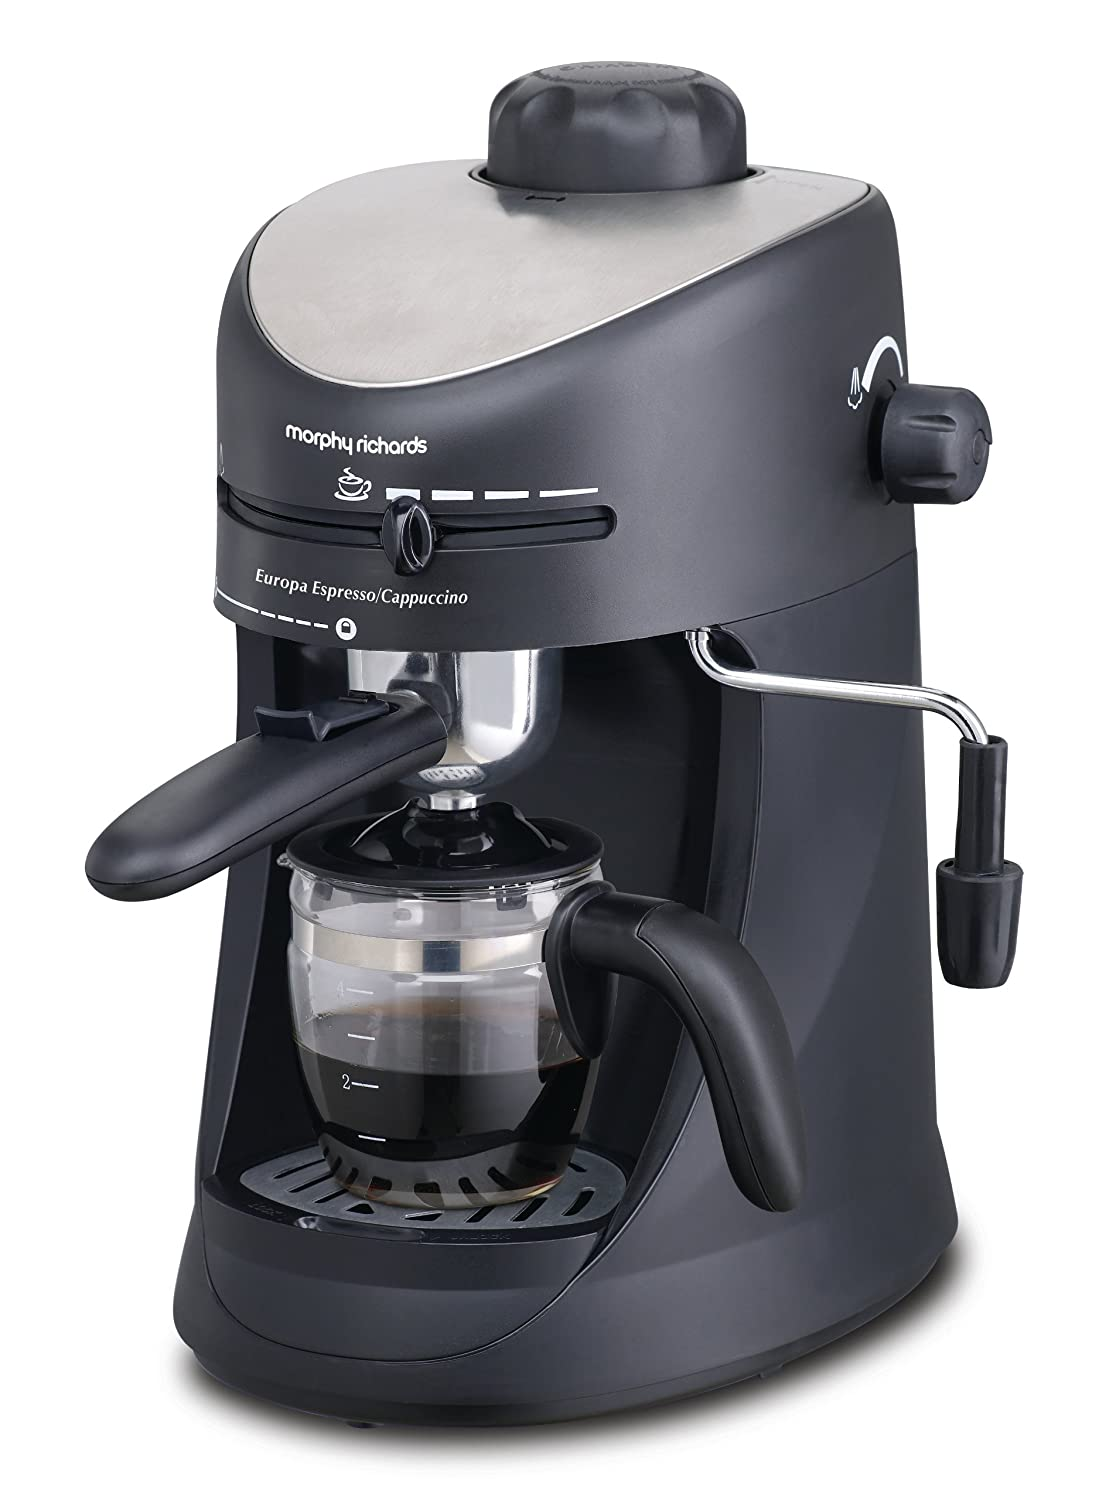 Electronic Make Coffee With Espresso Machine espresso machine buy machines online at low prices in morphy richards new europa 800 watt and cappuccino 4 cup coffee maker black